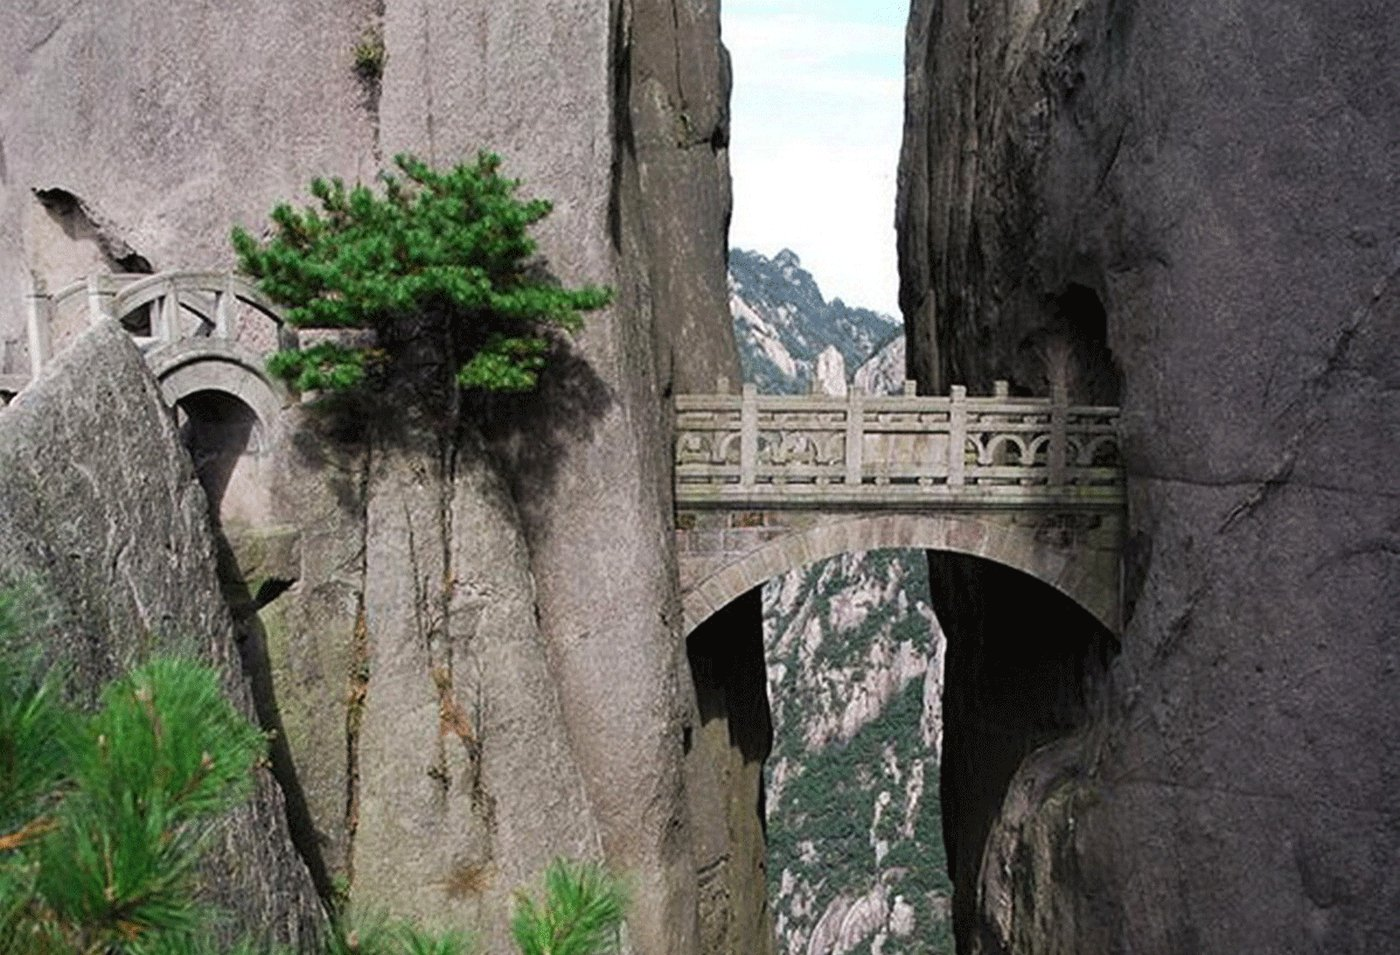 How to cross the bridge of immortal in Hangzhou